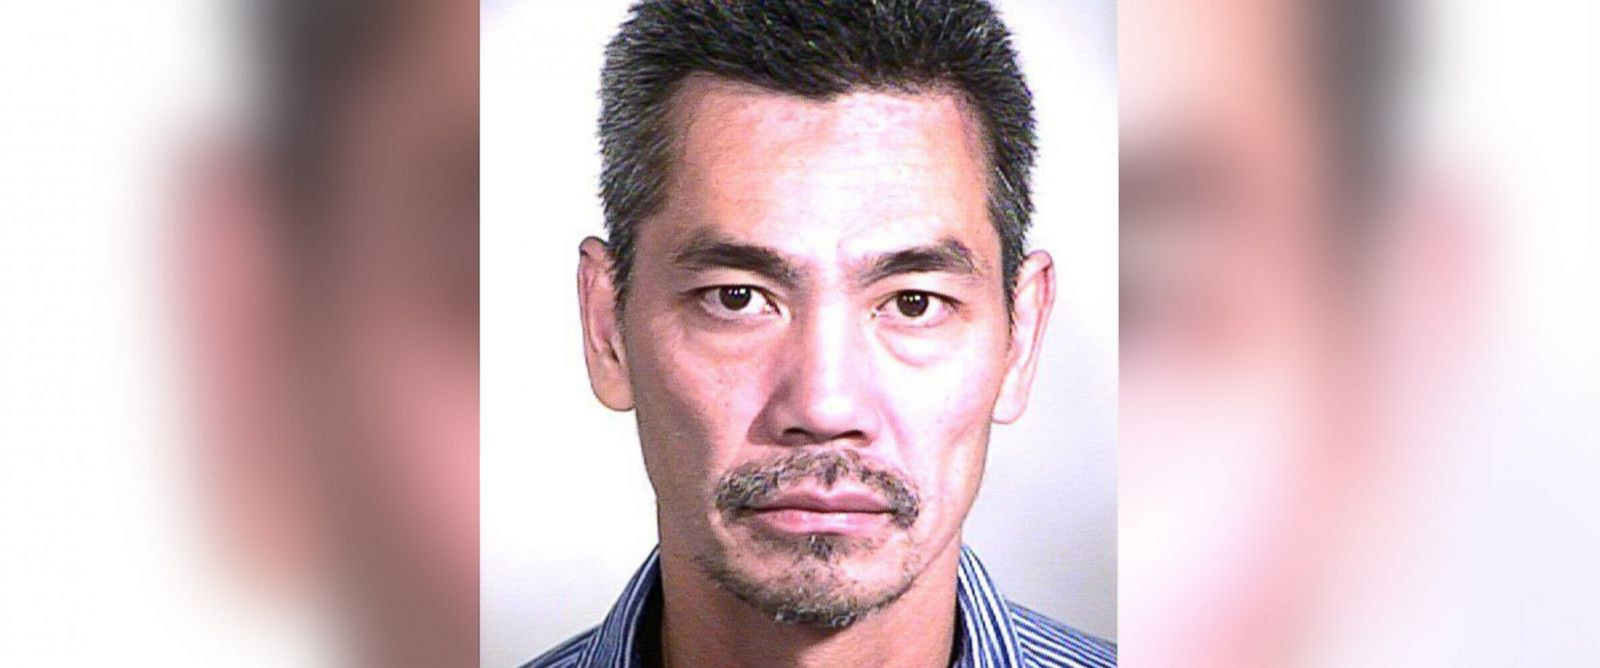 PHOTO: Bac Duong is pictured in an undated photo released by the Orange County Sheriffs Department.